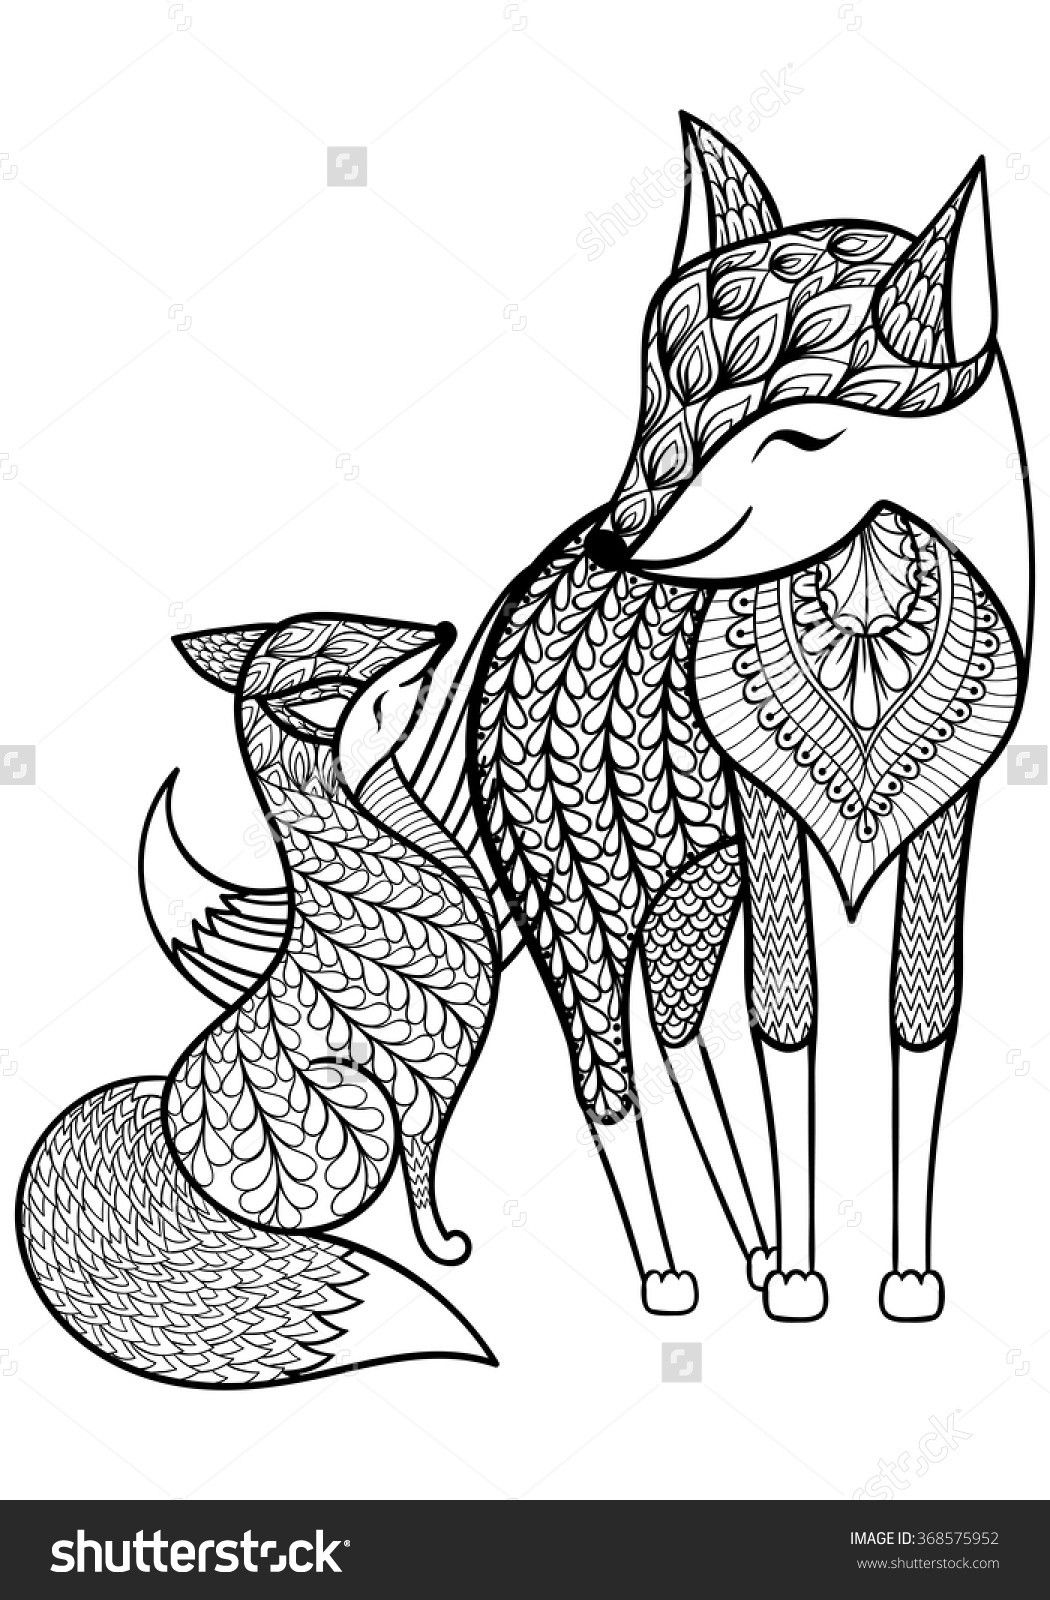 Mesmerizing Color In Socks 21 Coloring Pages Fox Images Free Printable Baby Arctic For Toddlers Drawing Fox Coloring Page Animal Coloring Pages Coloring Pages